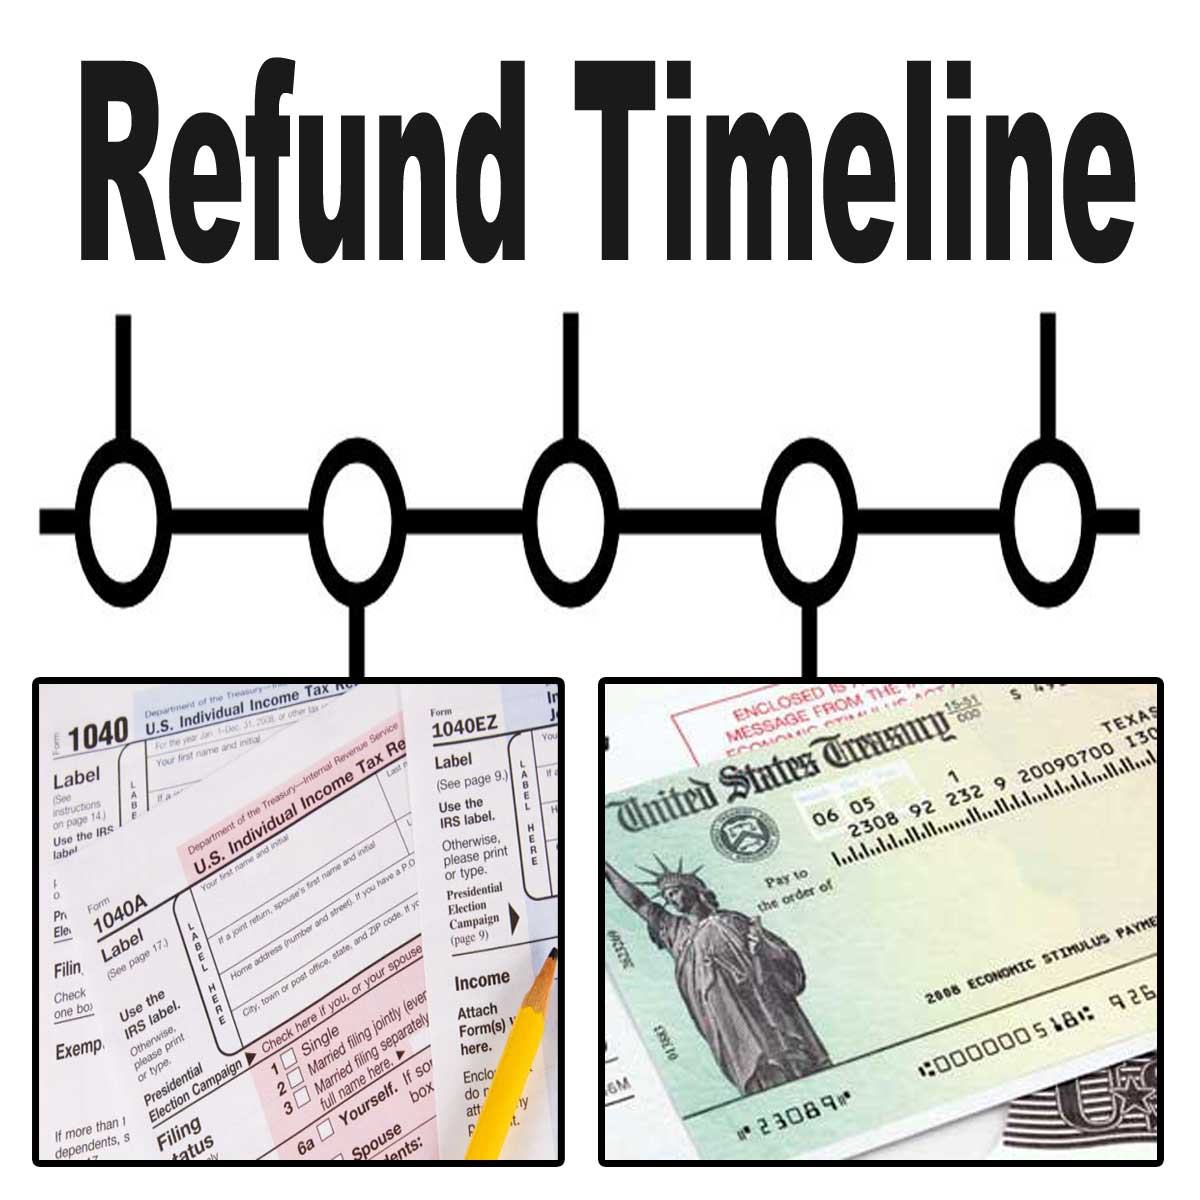 Timeline for 2020 Refunds